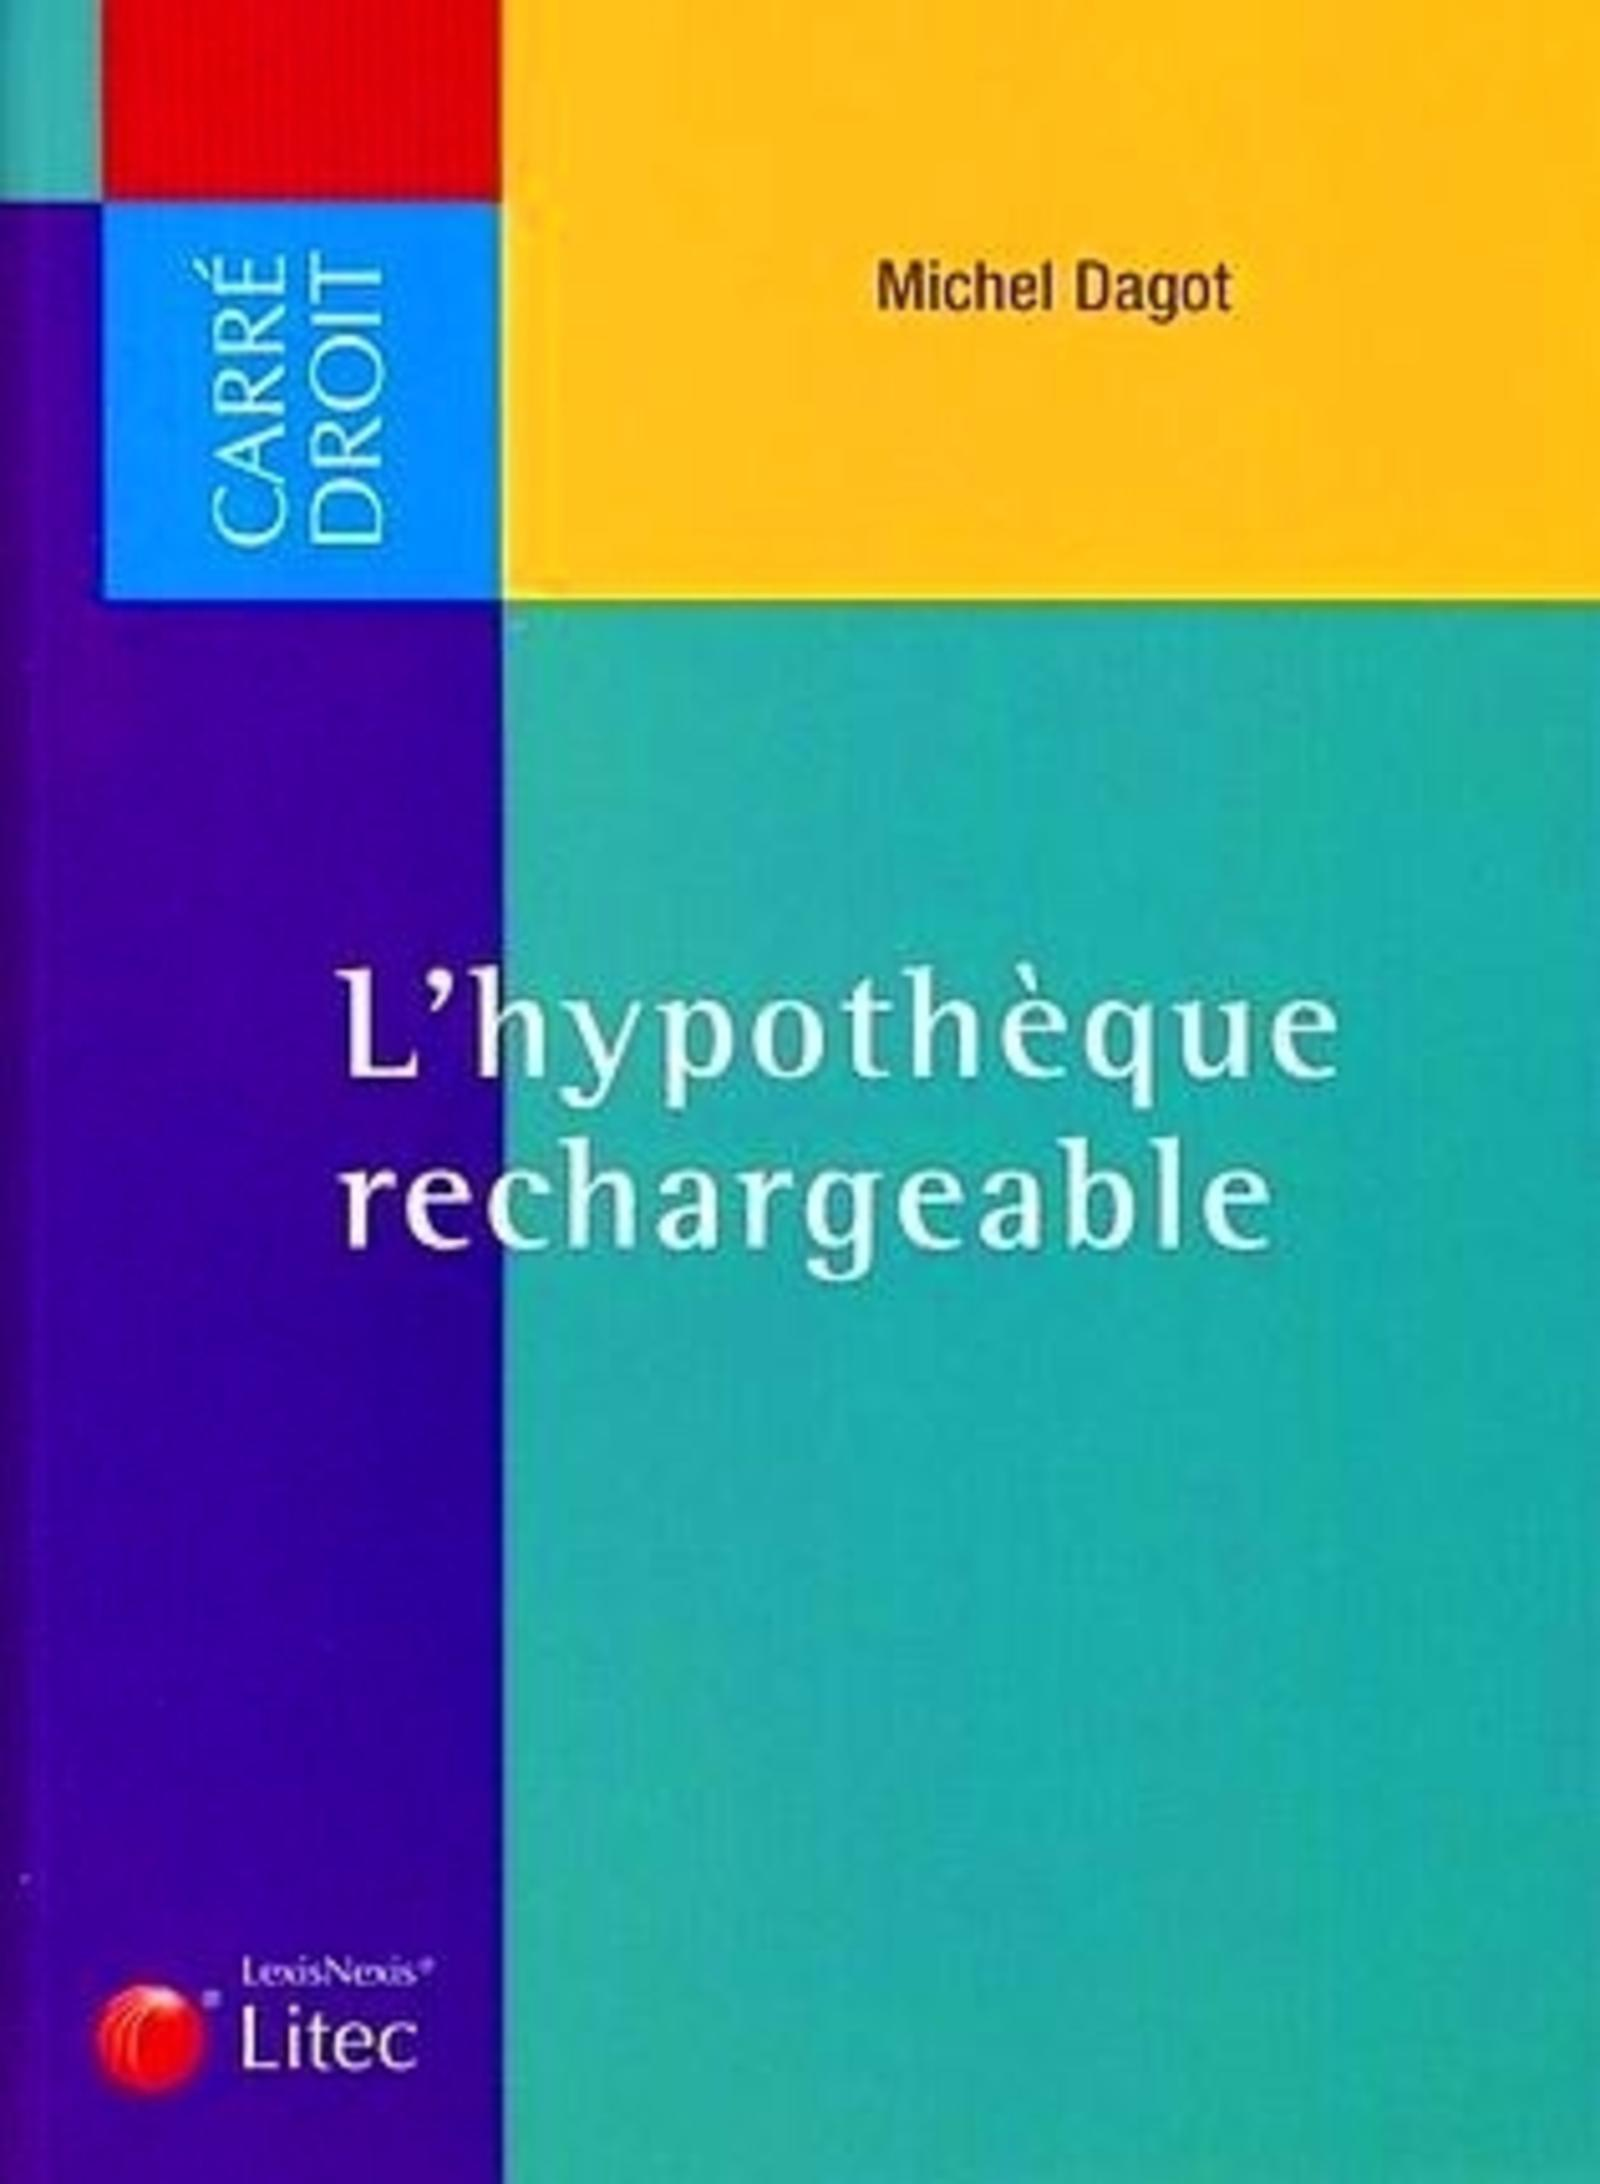 L'HYPOTHEQUE RECHARGEABLE